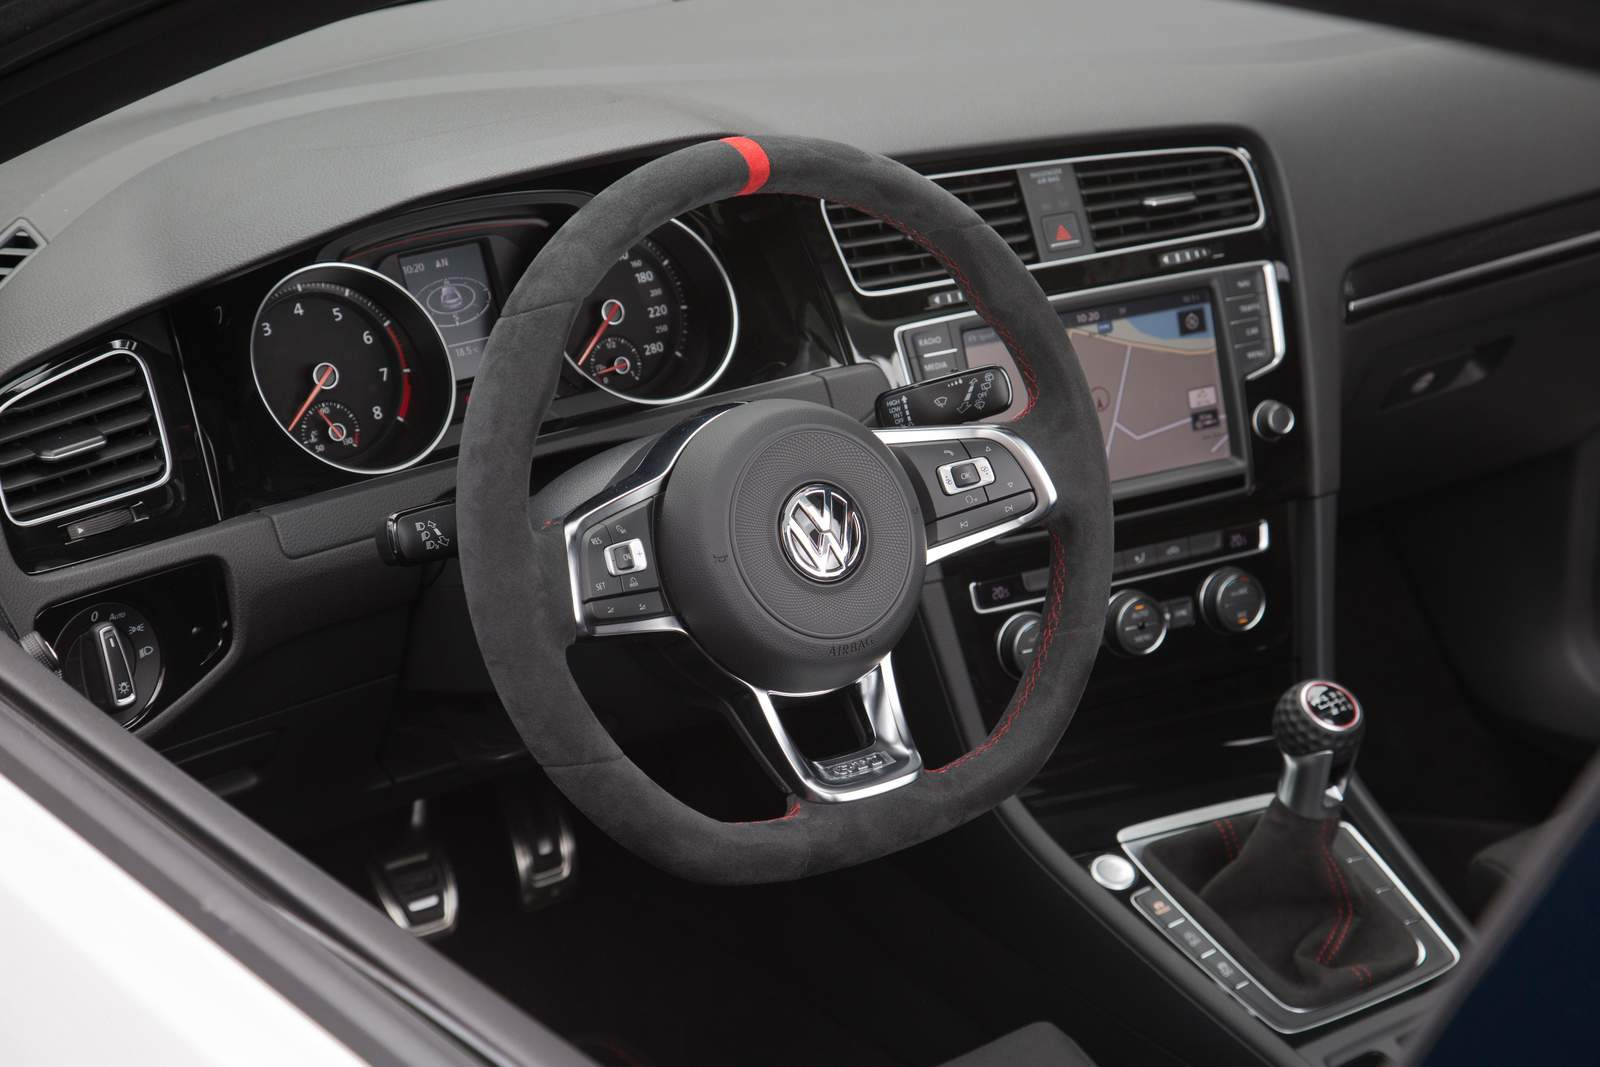 Vw golf gti 2016 clubsport fotos externas e do interior for Interior volkswagen golf